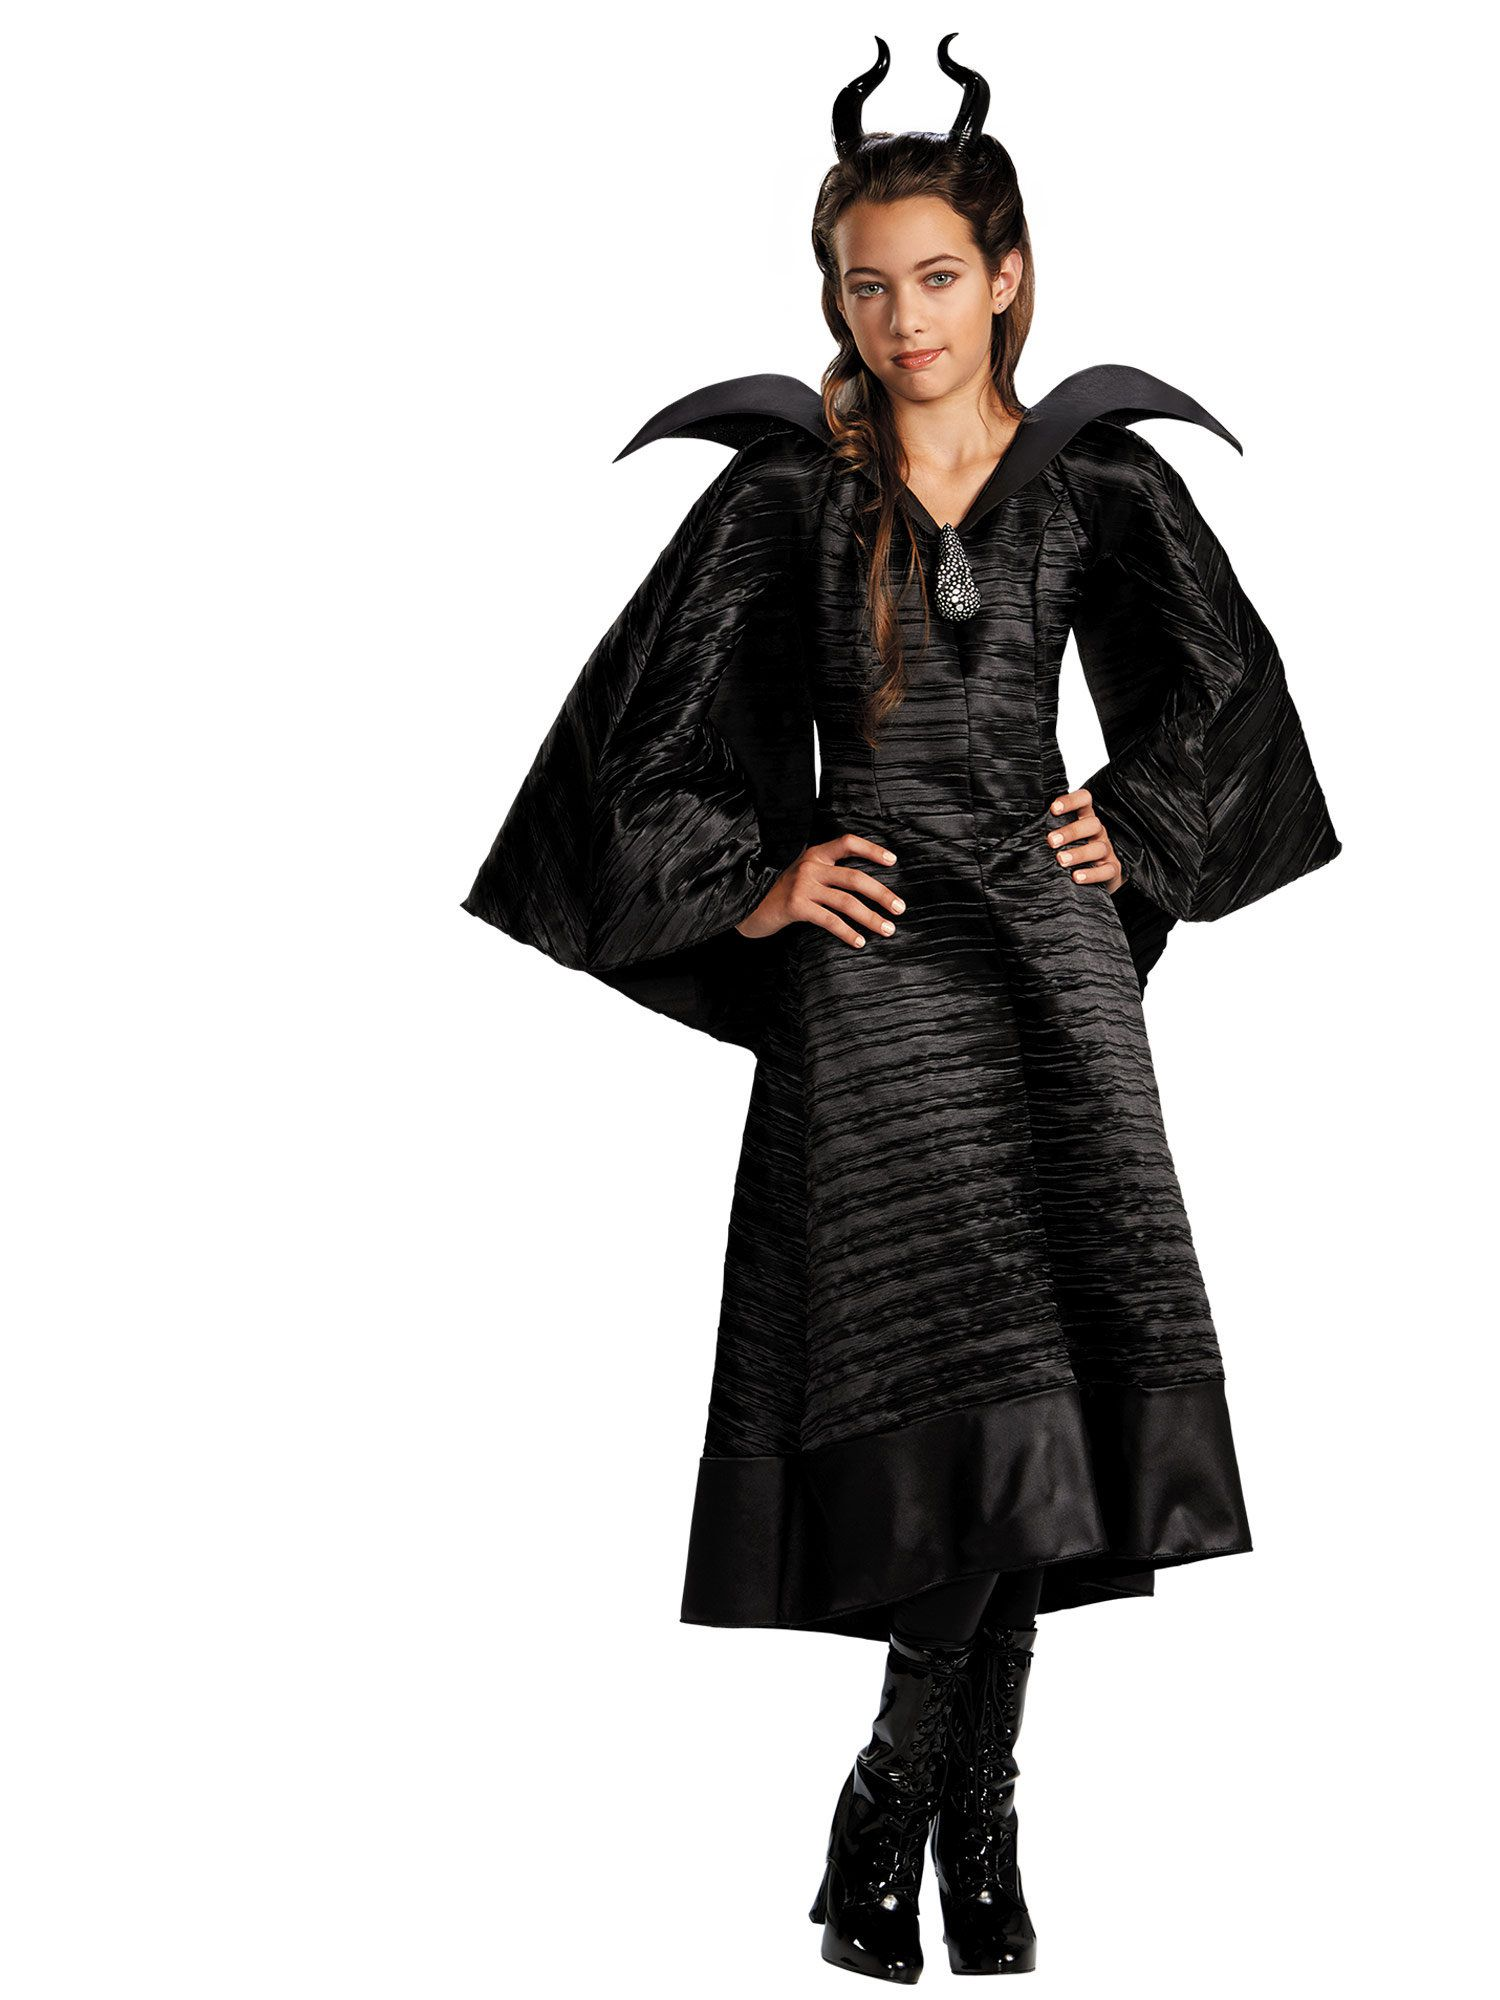 Maleficent Christening Black Gown Deluxe Child Costume